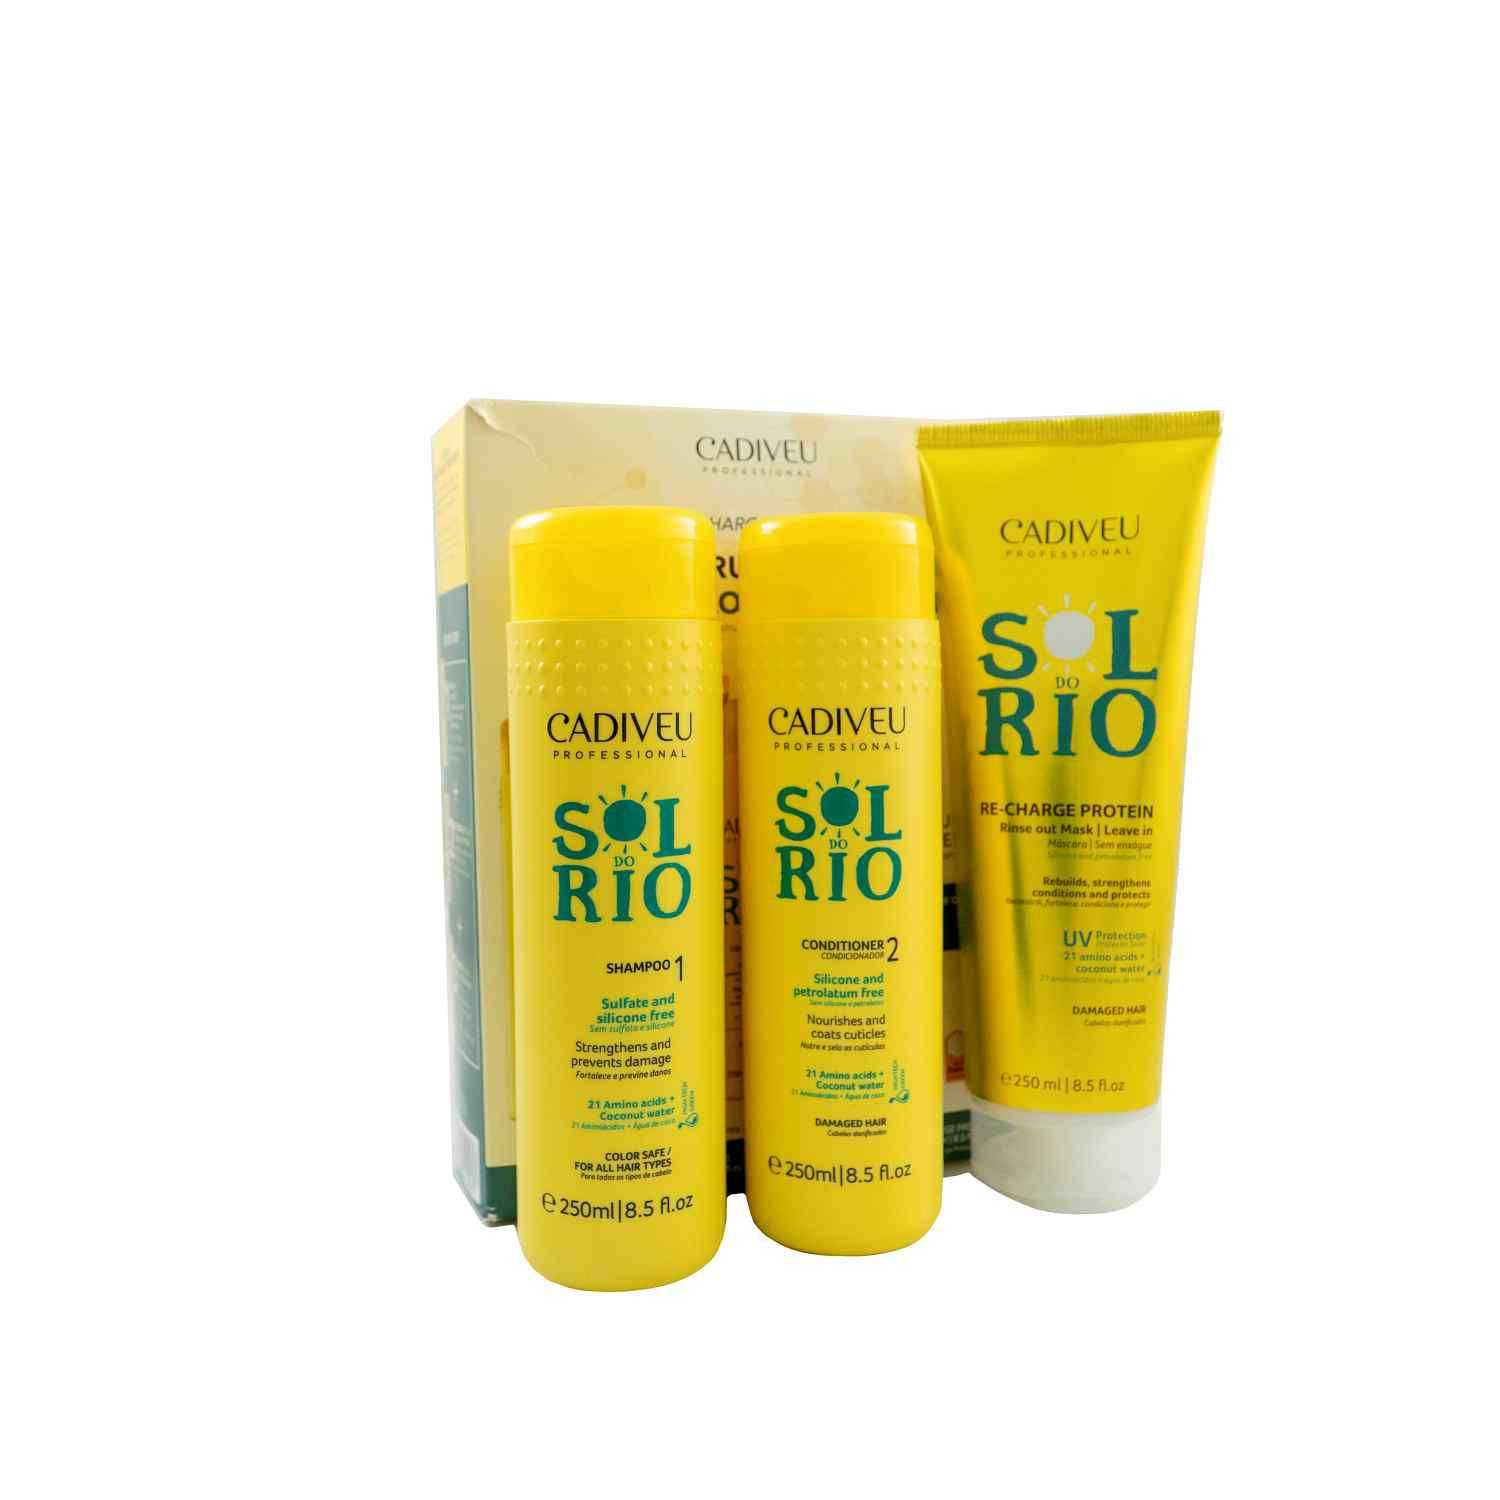 Sol do Rio - Kit Home Care - Cadiveu Professional